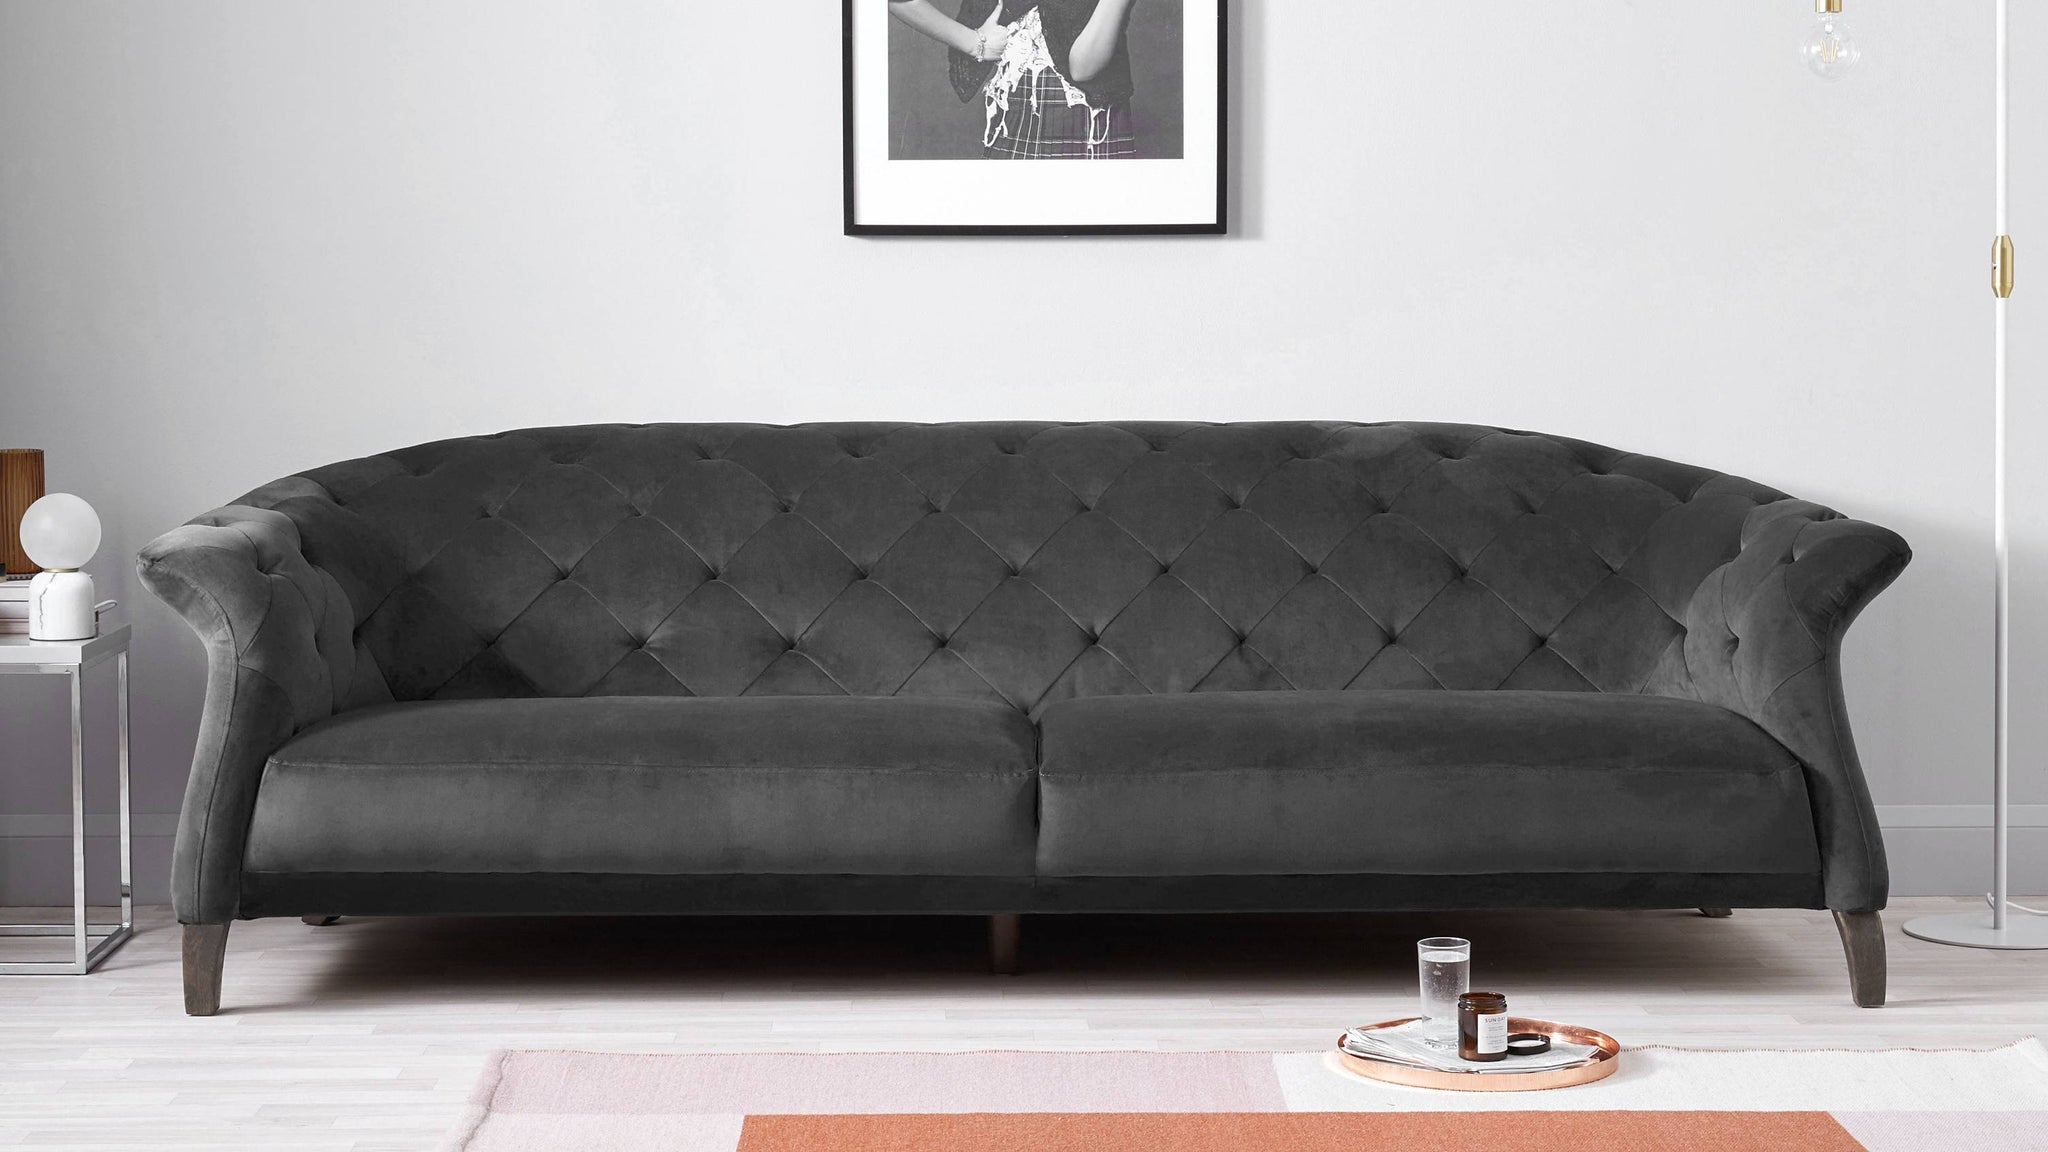 Large dark grey modern sofa